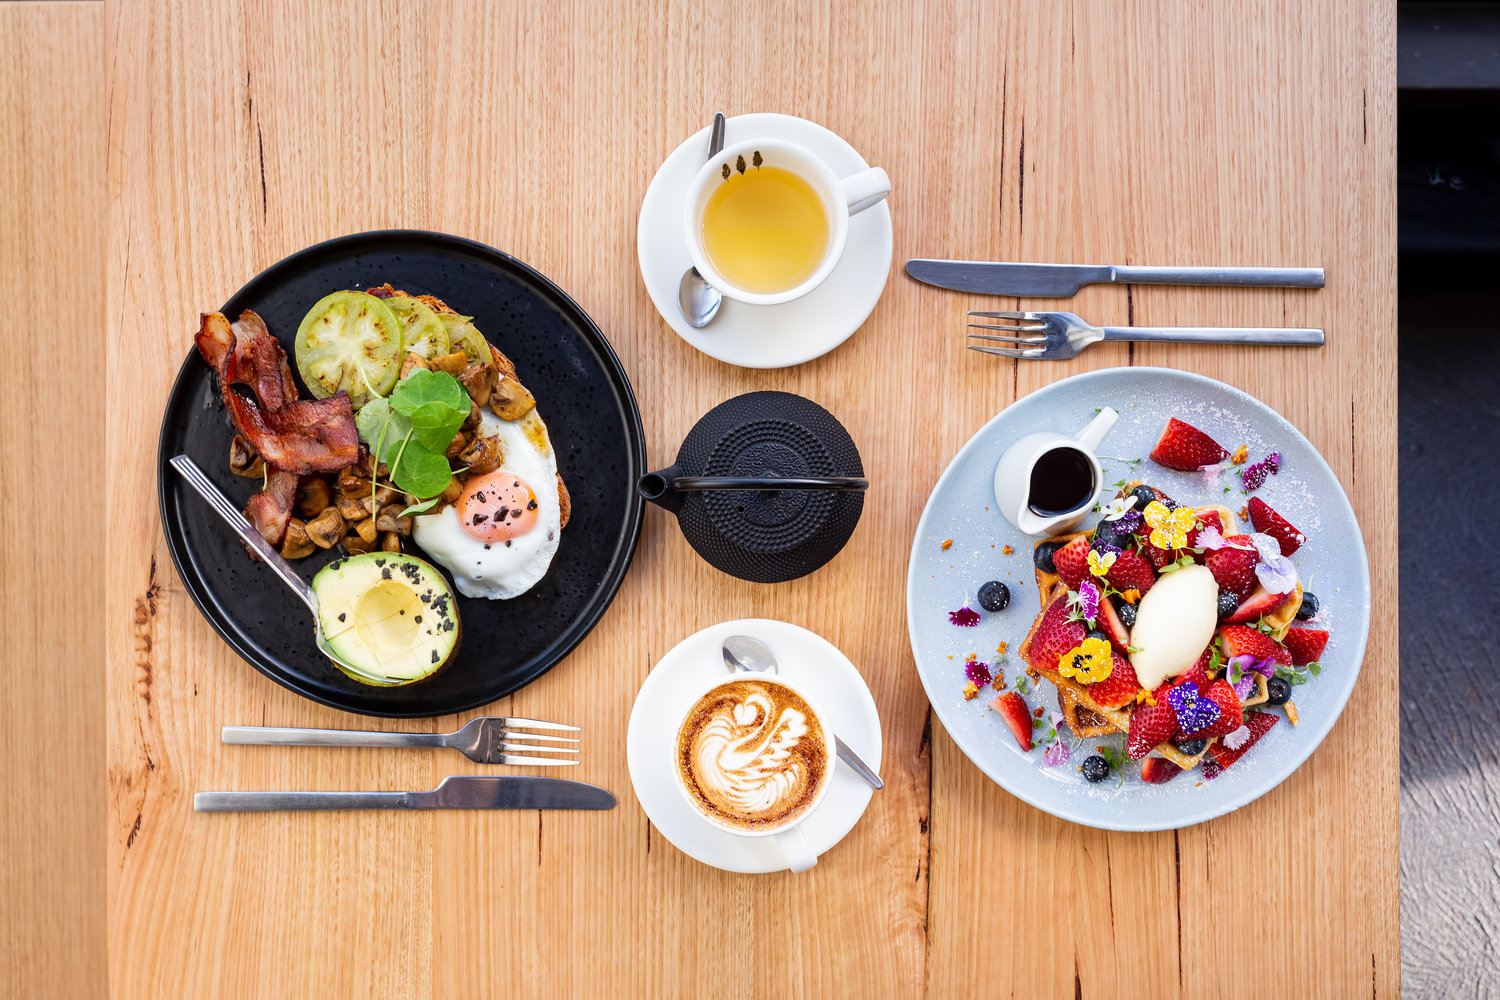 20 Most Insta-Worthy Brunch Spots in Australia - Click here to read now!